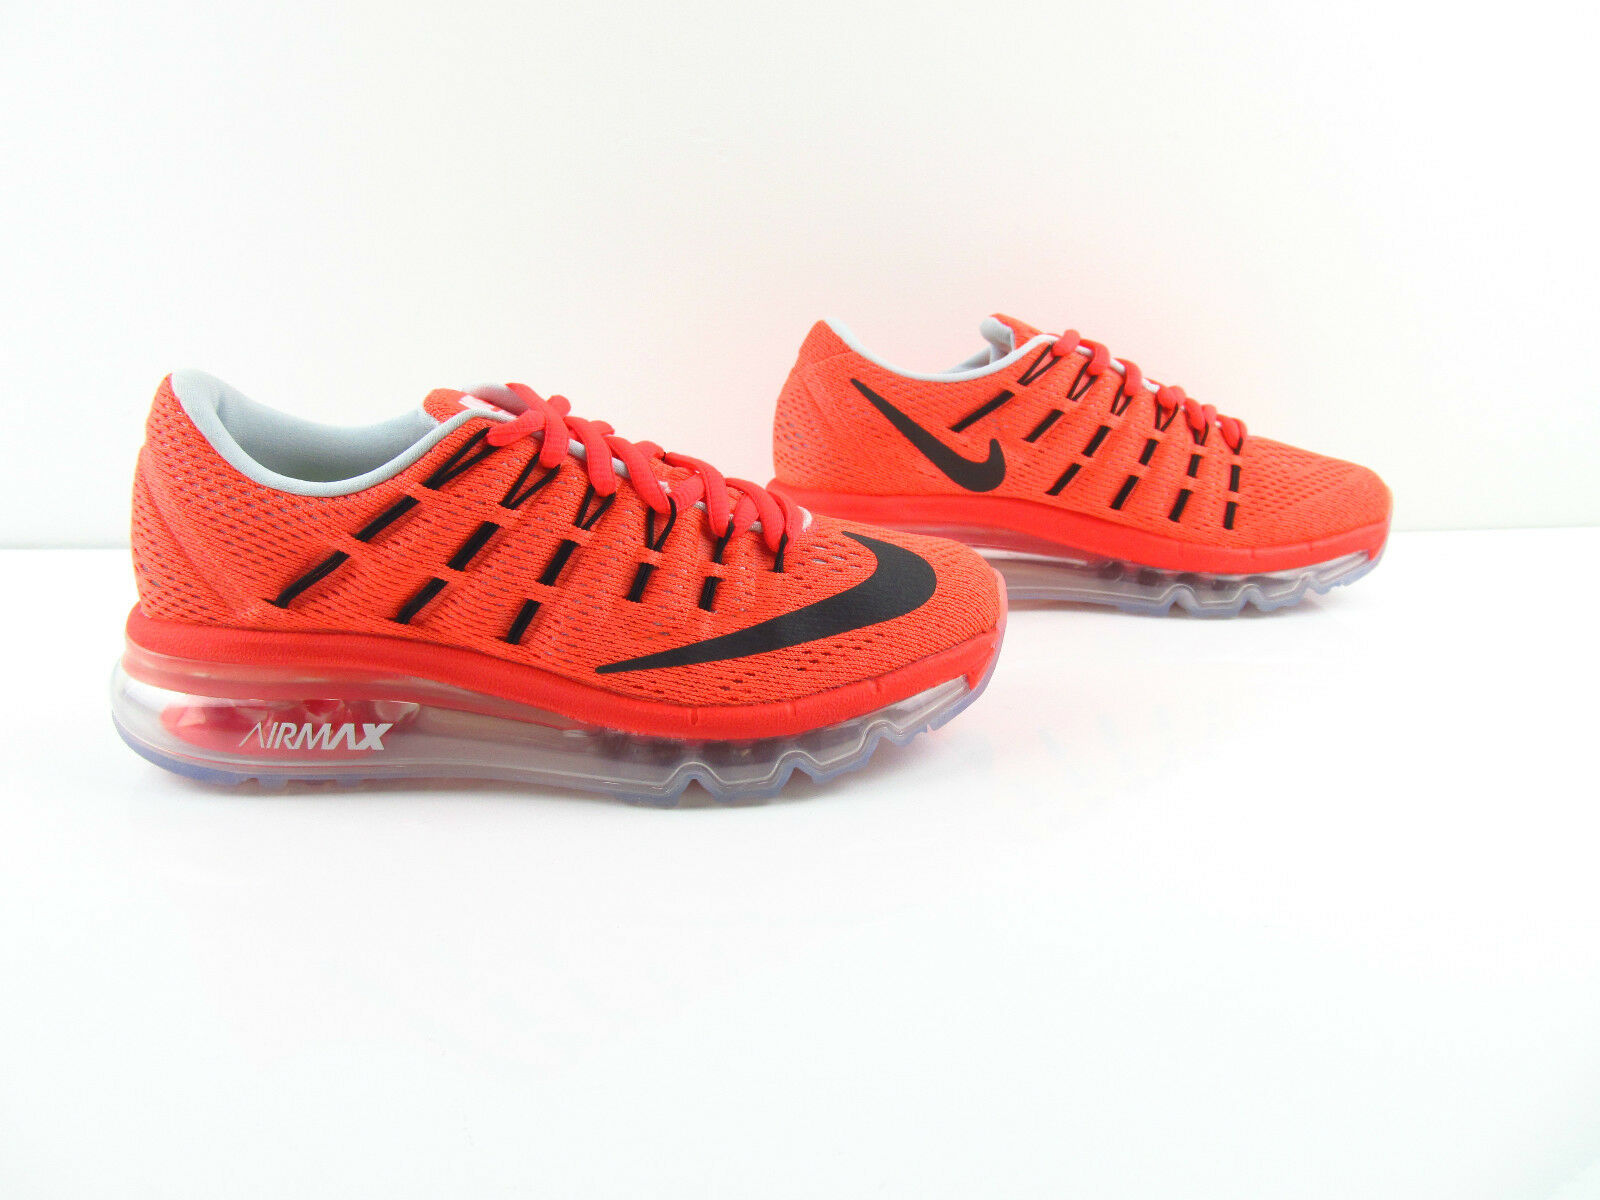 Nike Air Max 2016 Bright Crimson gym Red Volt Volt Volt Black New Eur 35.5 ebd549